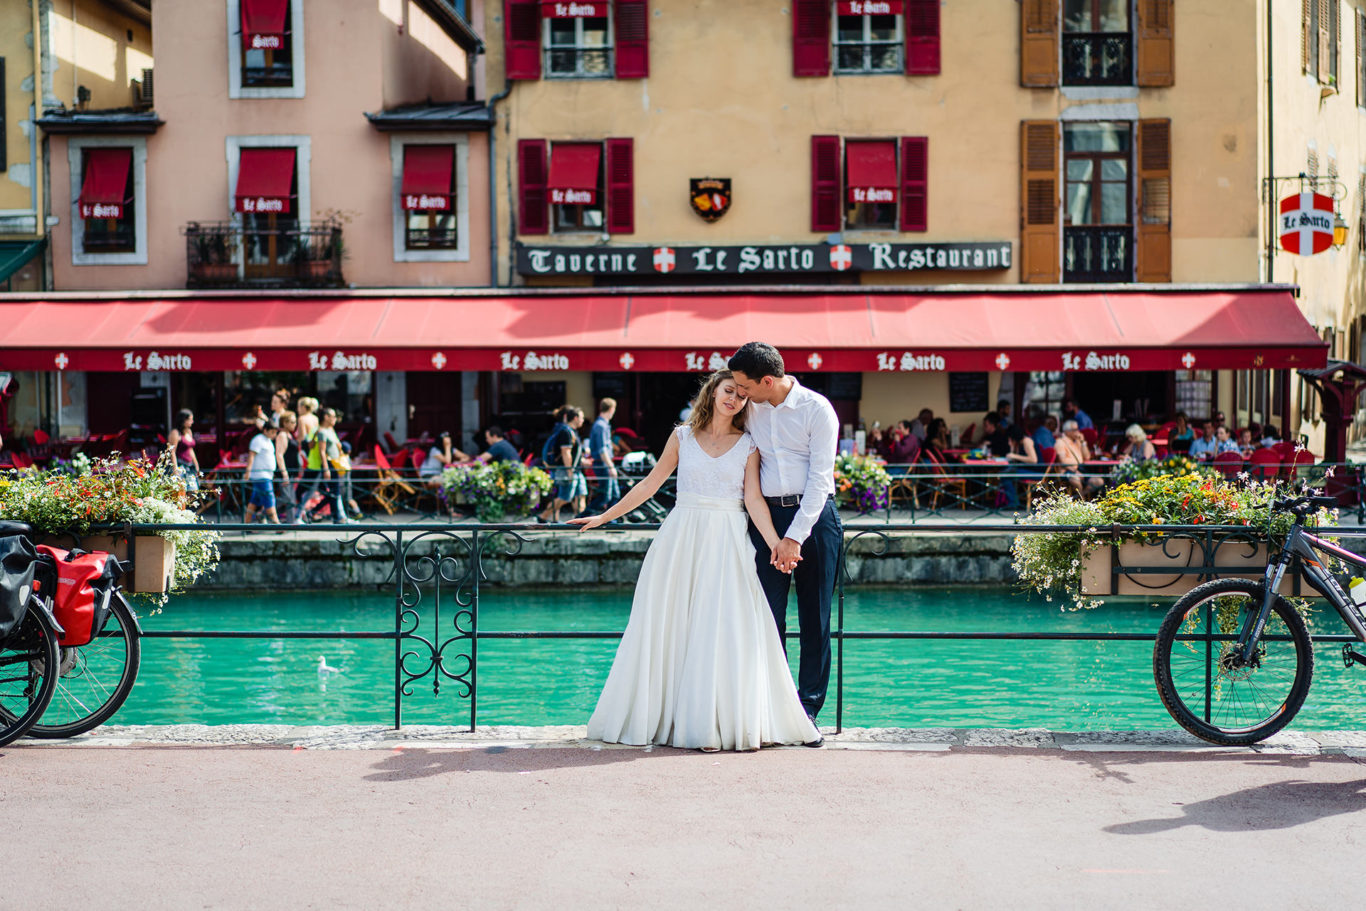 Love the Dress - Annecy Town - Mihaela & Guillame